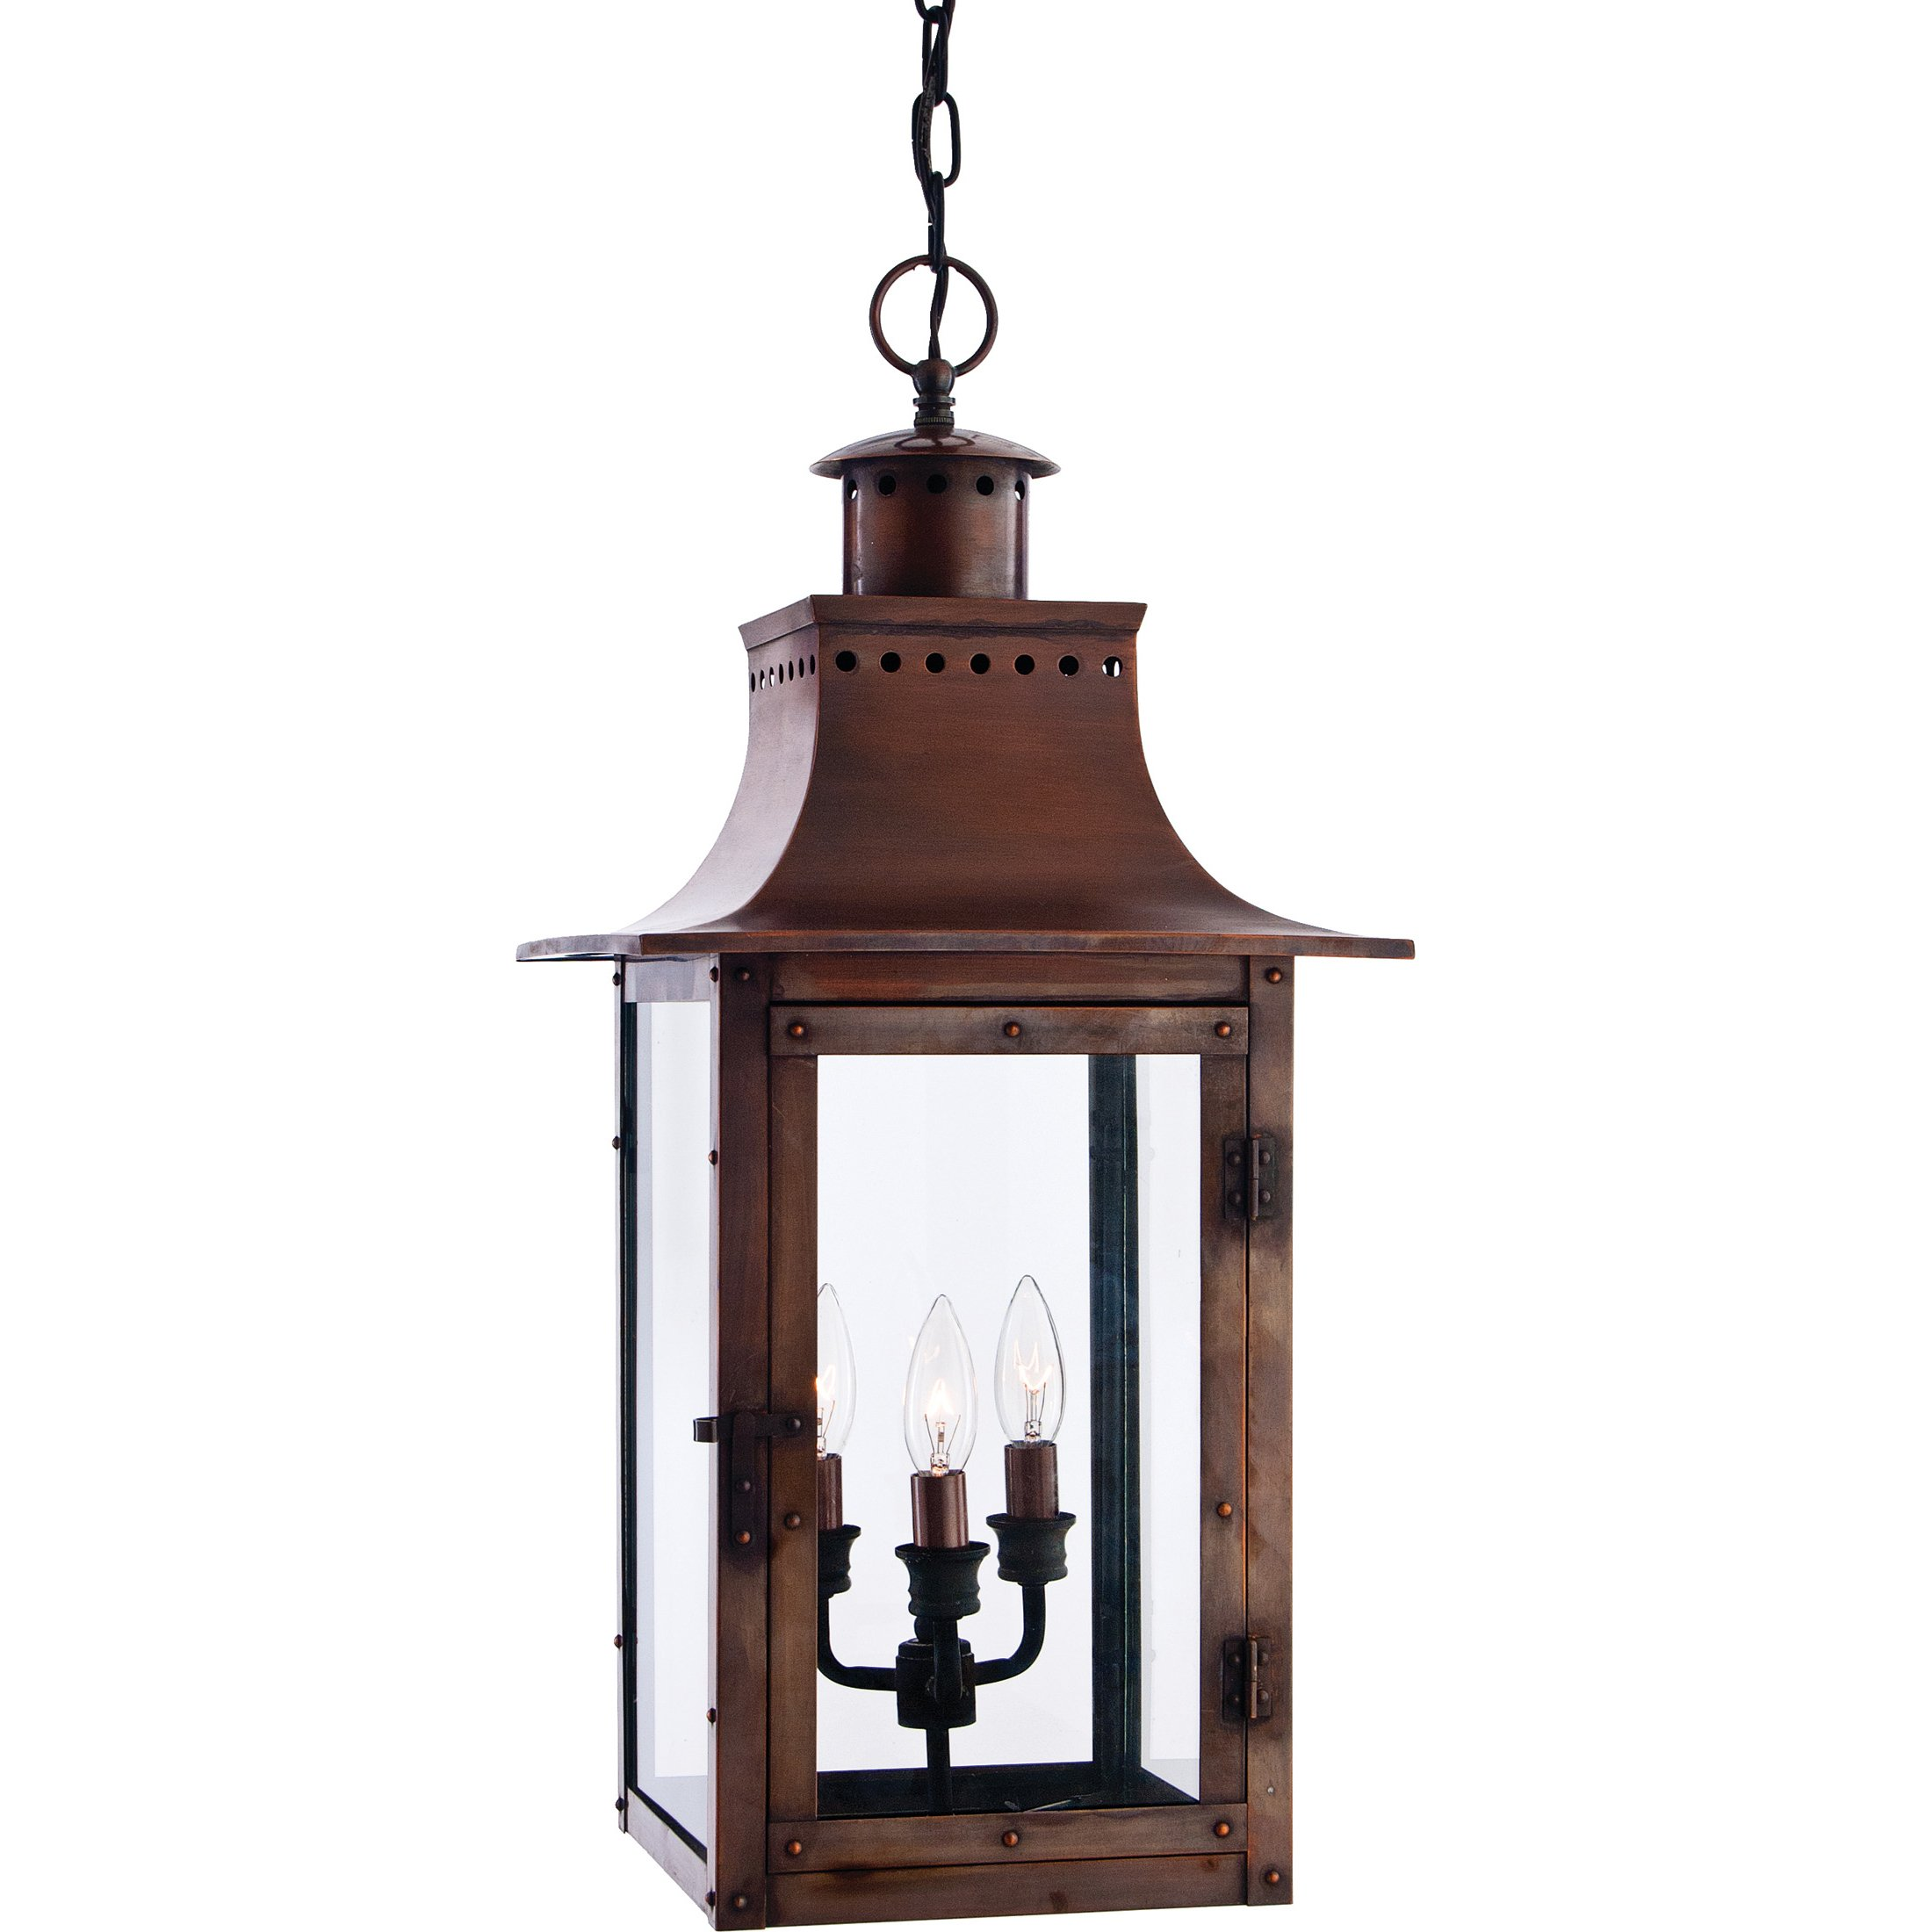 Quoizel CM1912AC Chalmers 26-Inch Jumbo Hanging Lantern, Aged Copper Finish by Quoizel